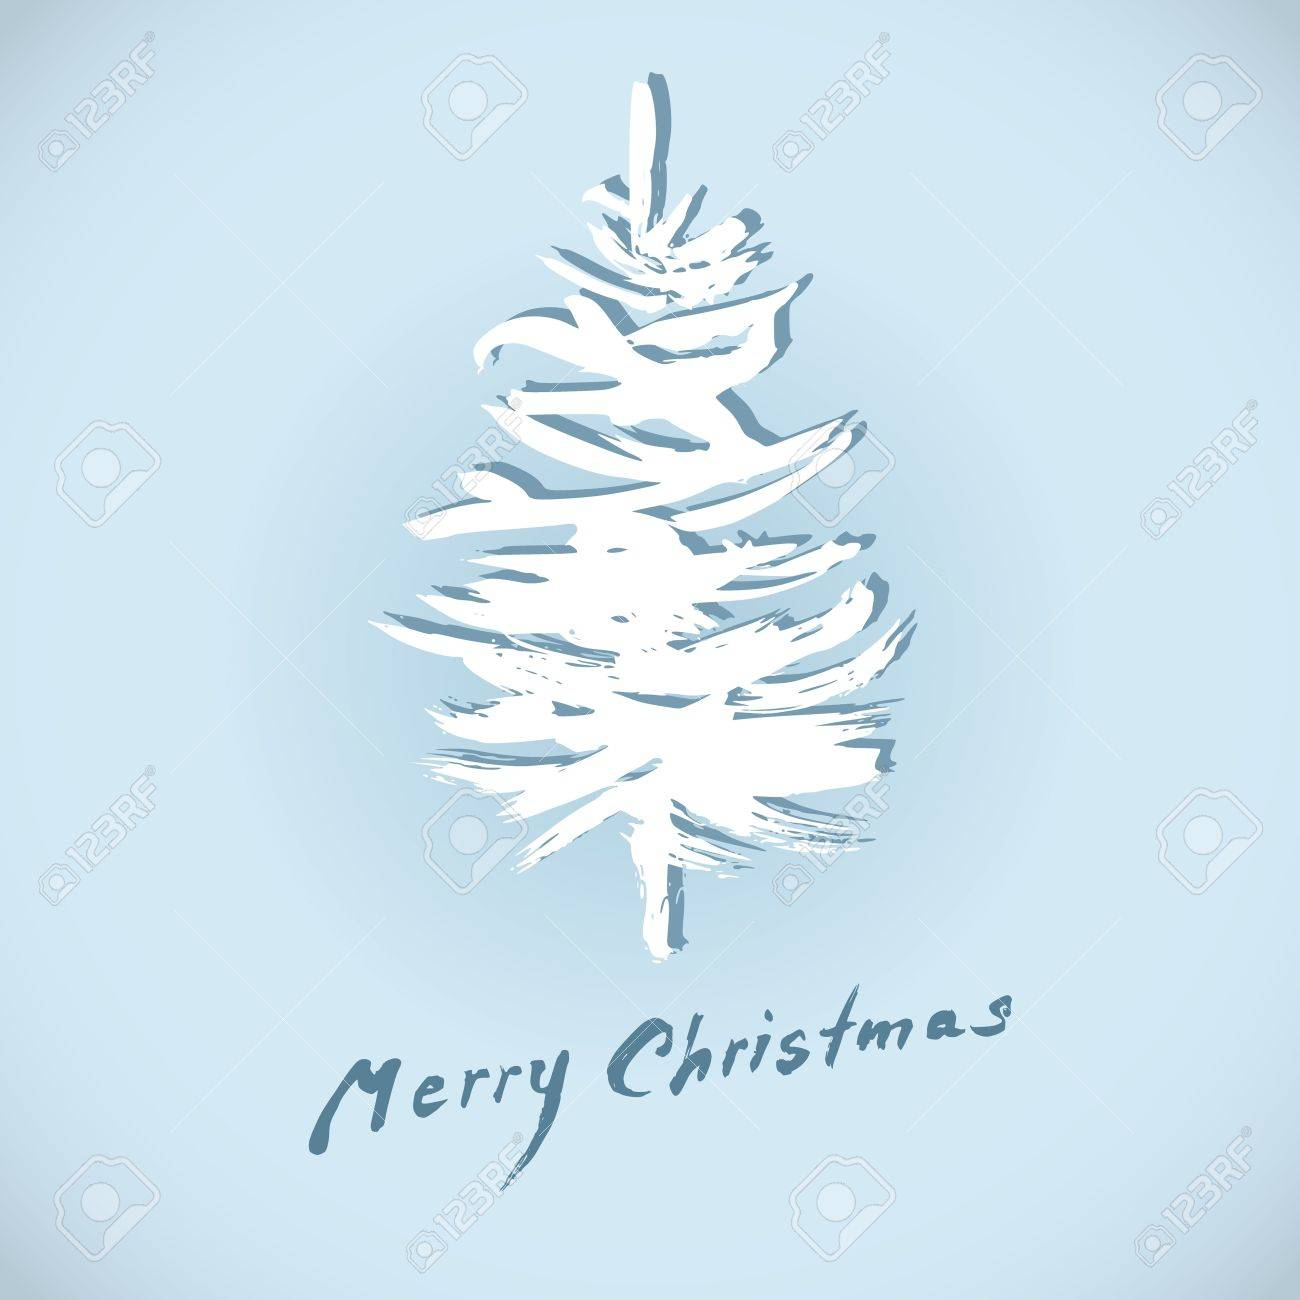 Christmas Background - Simple Christmas Card Royalty Free Cliparts ...